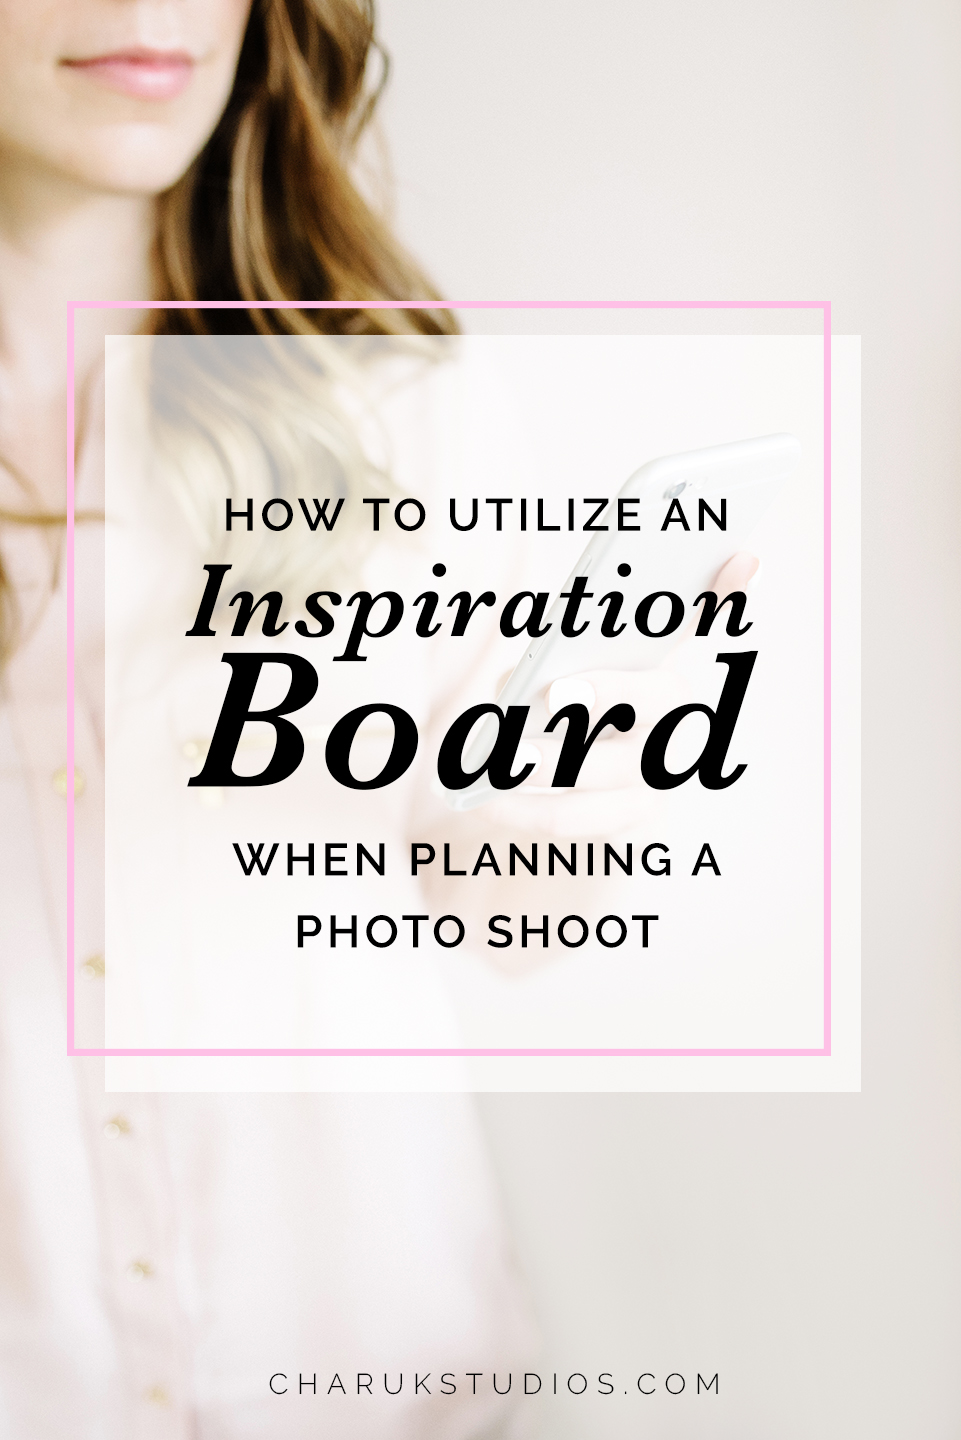 How to Utilize an Inspiration Board when Planning a Photo Shoot